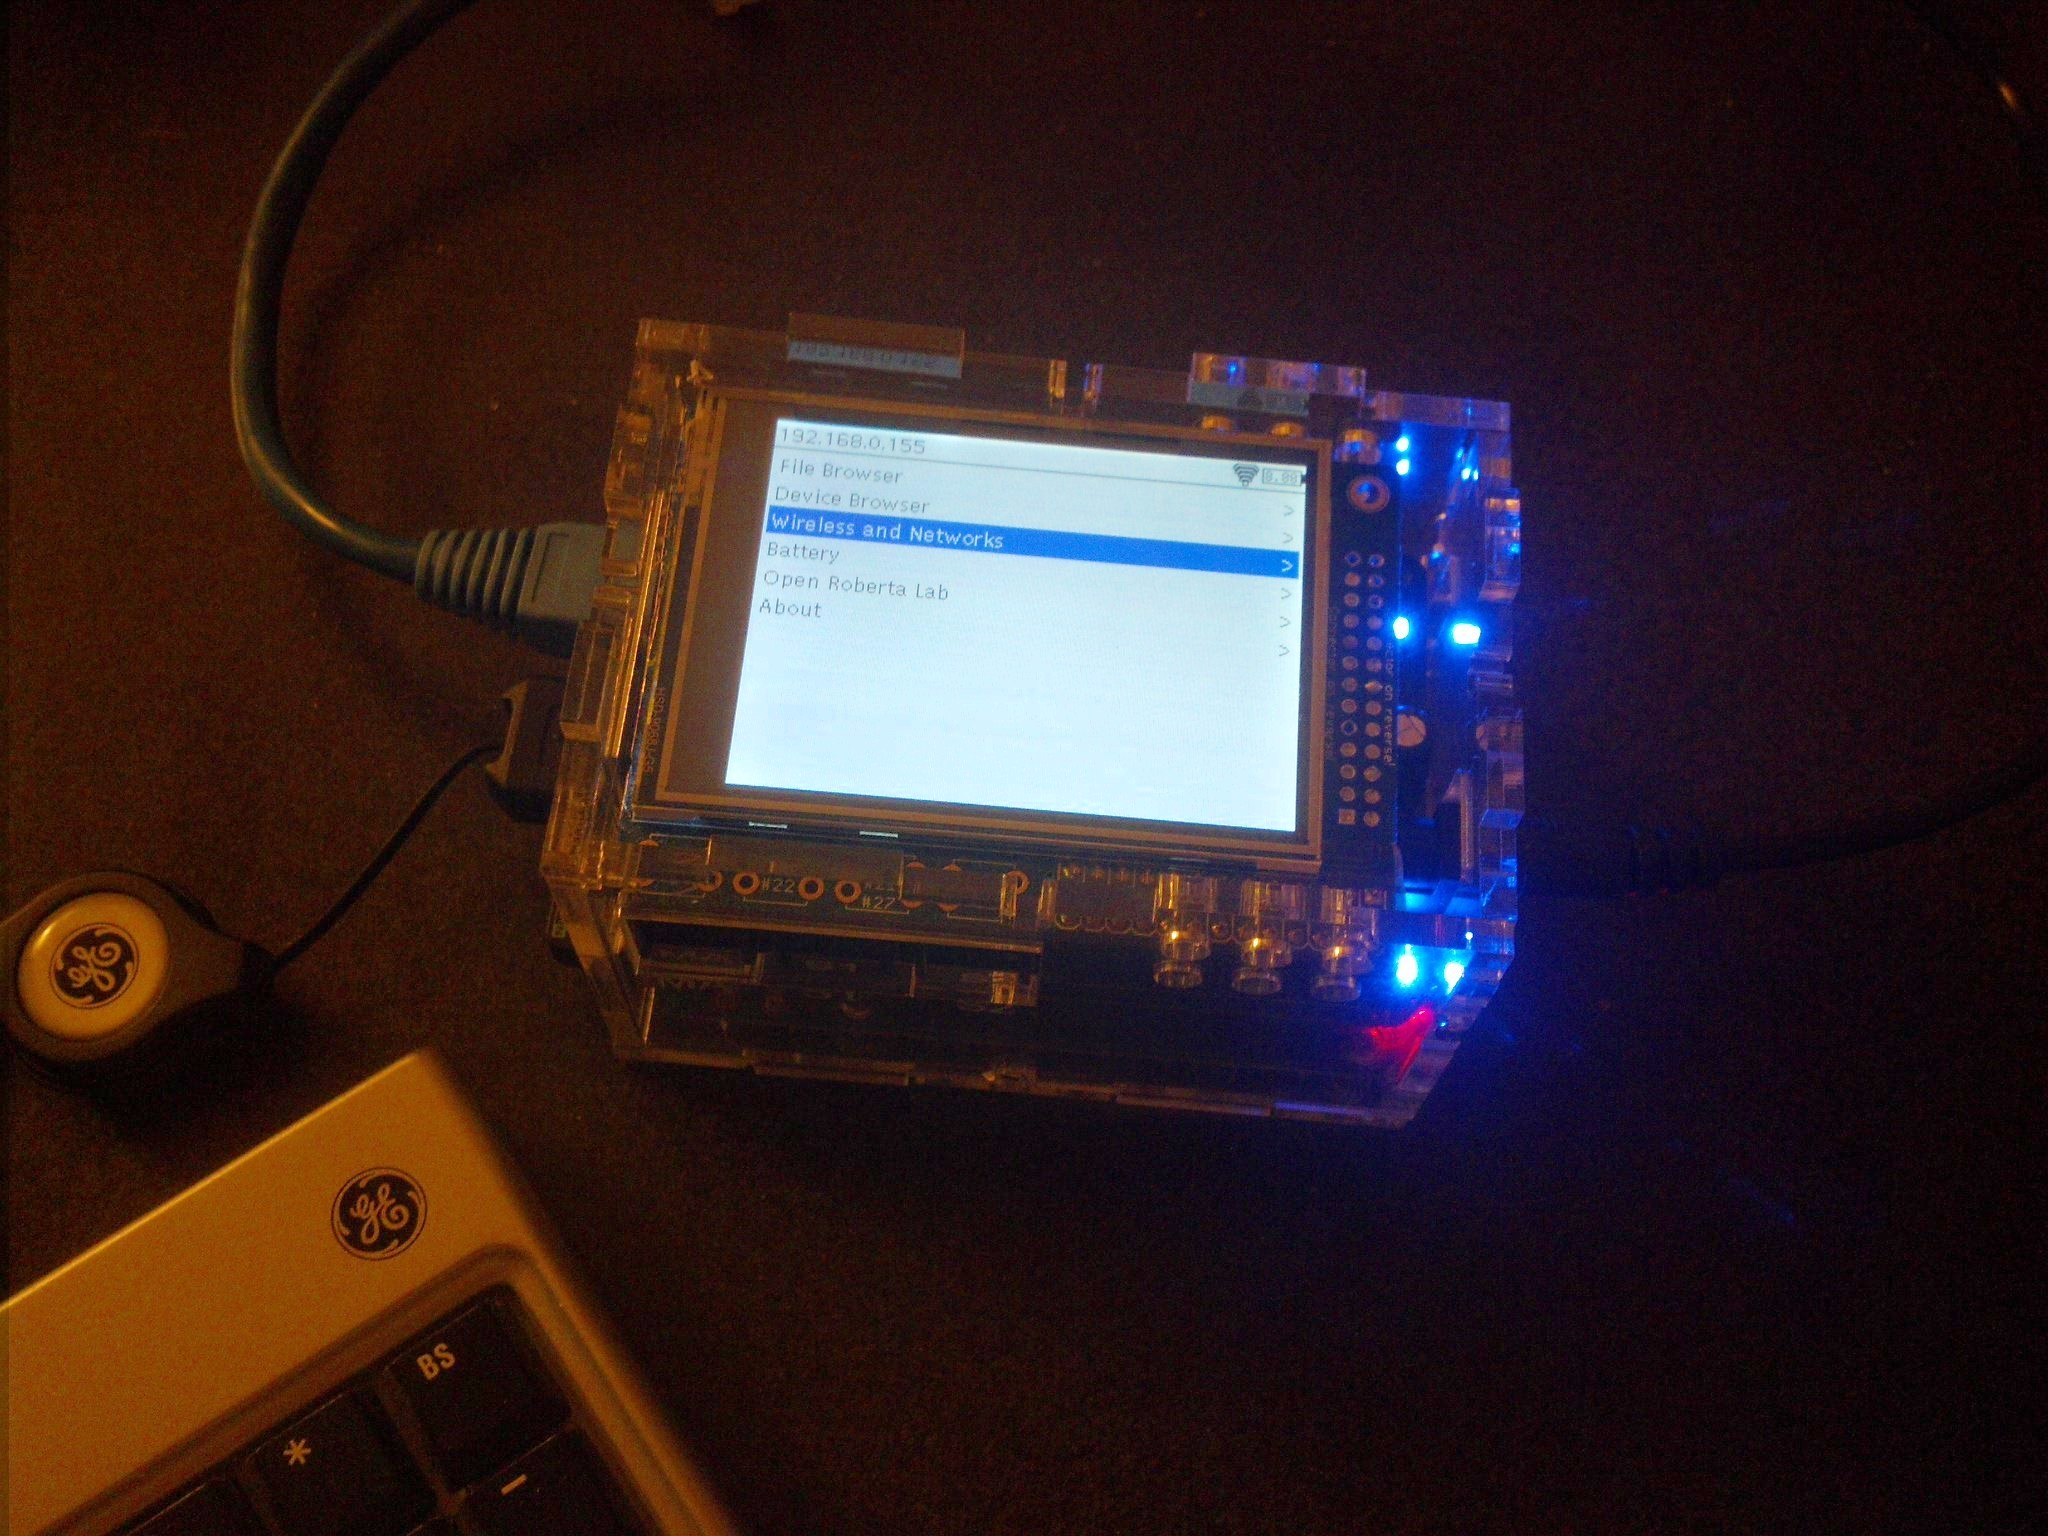 Adding a Display to BrickPi